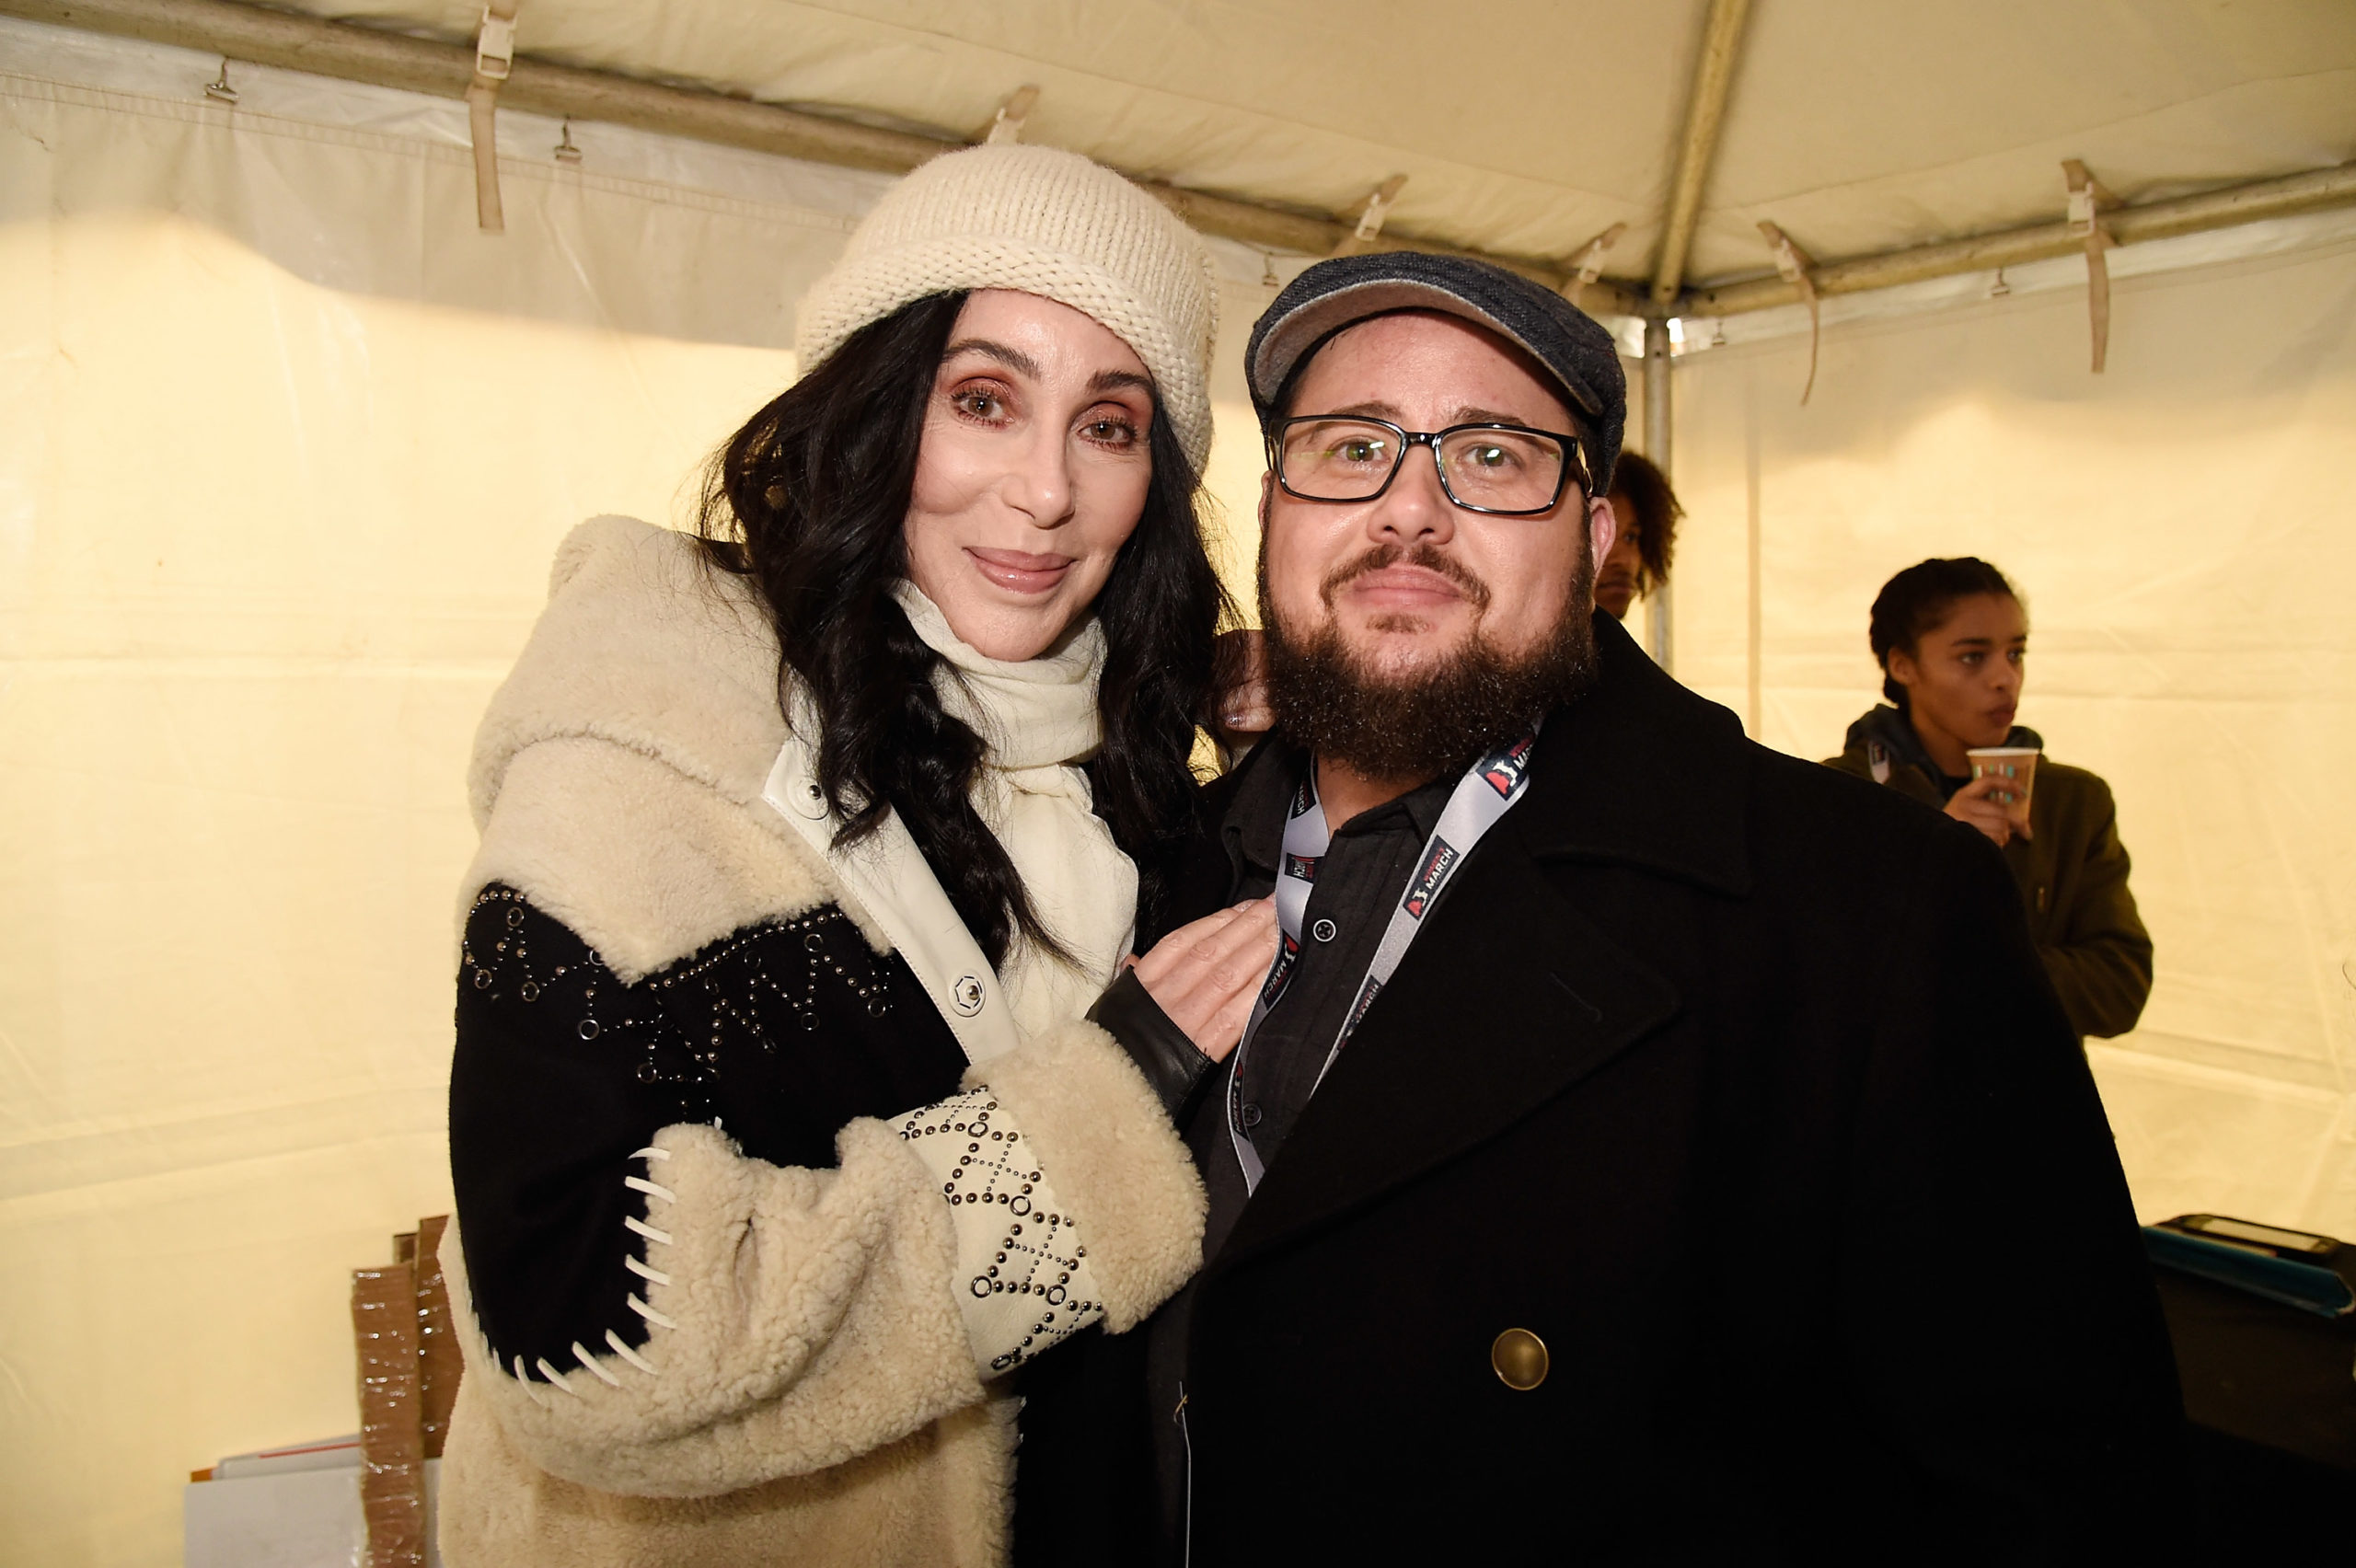 Cher with her son Chaz Bono